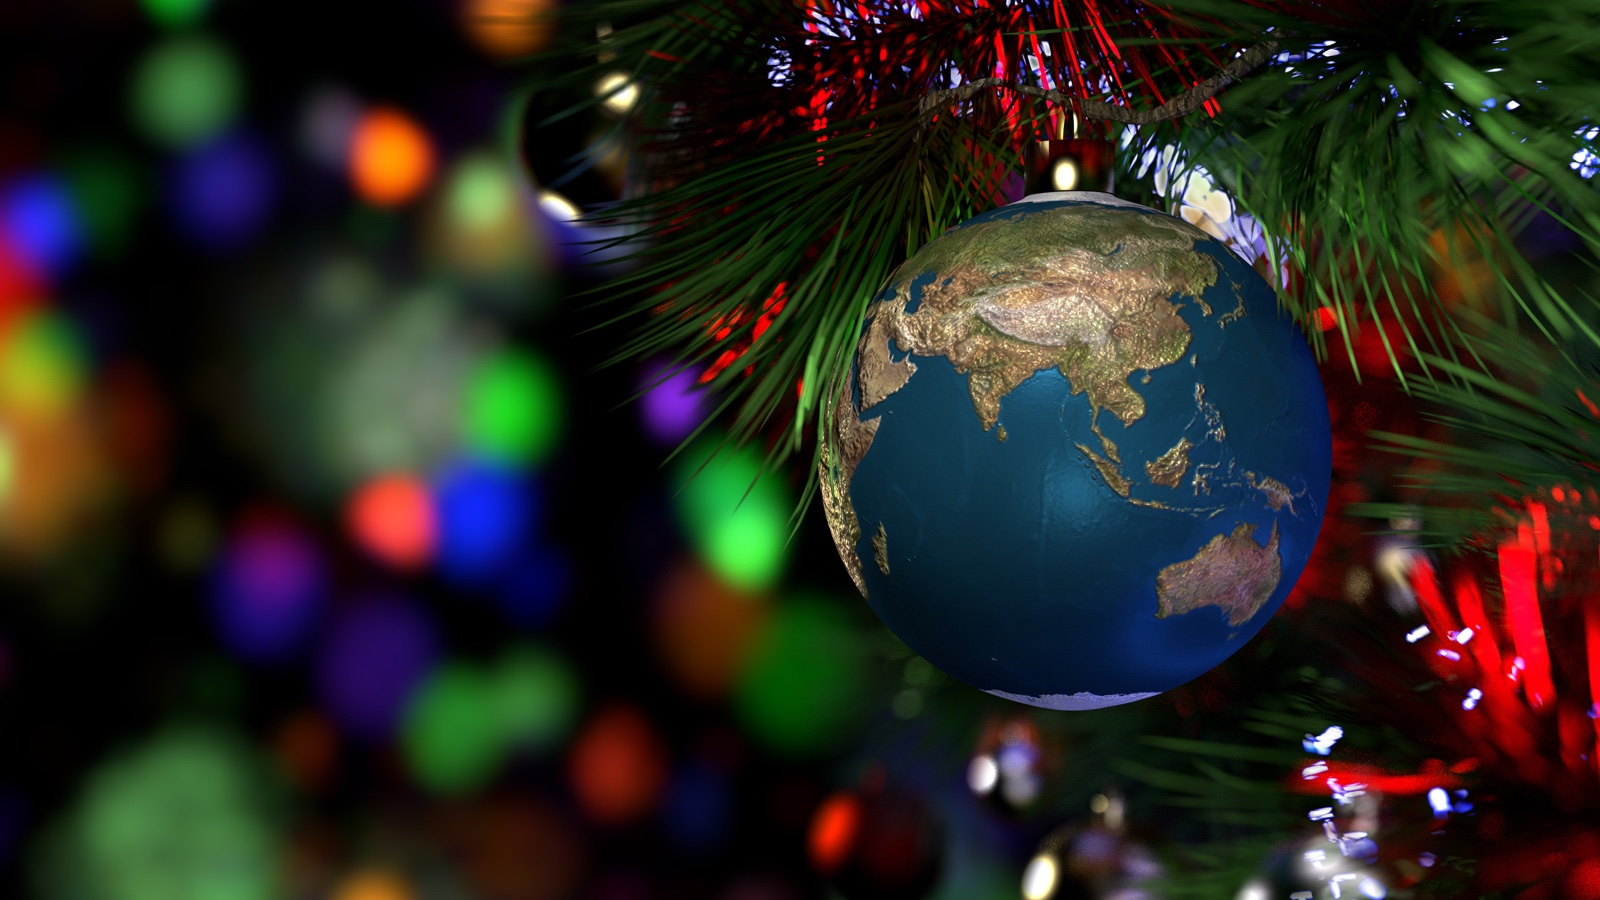 presents under the tree and milk and cookies for santa its what americans do every year in anticipation of christmas around the globe people of